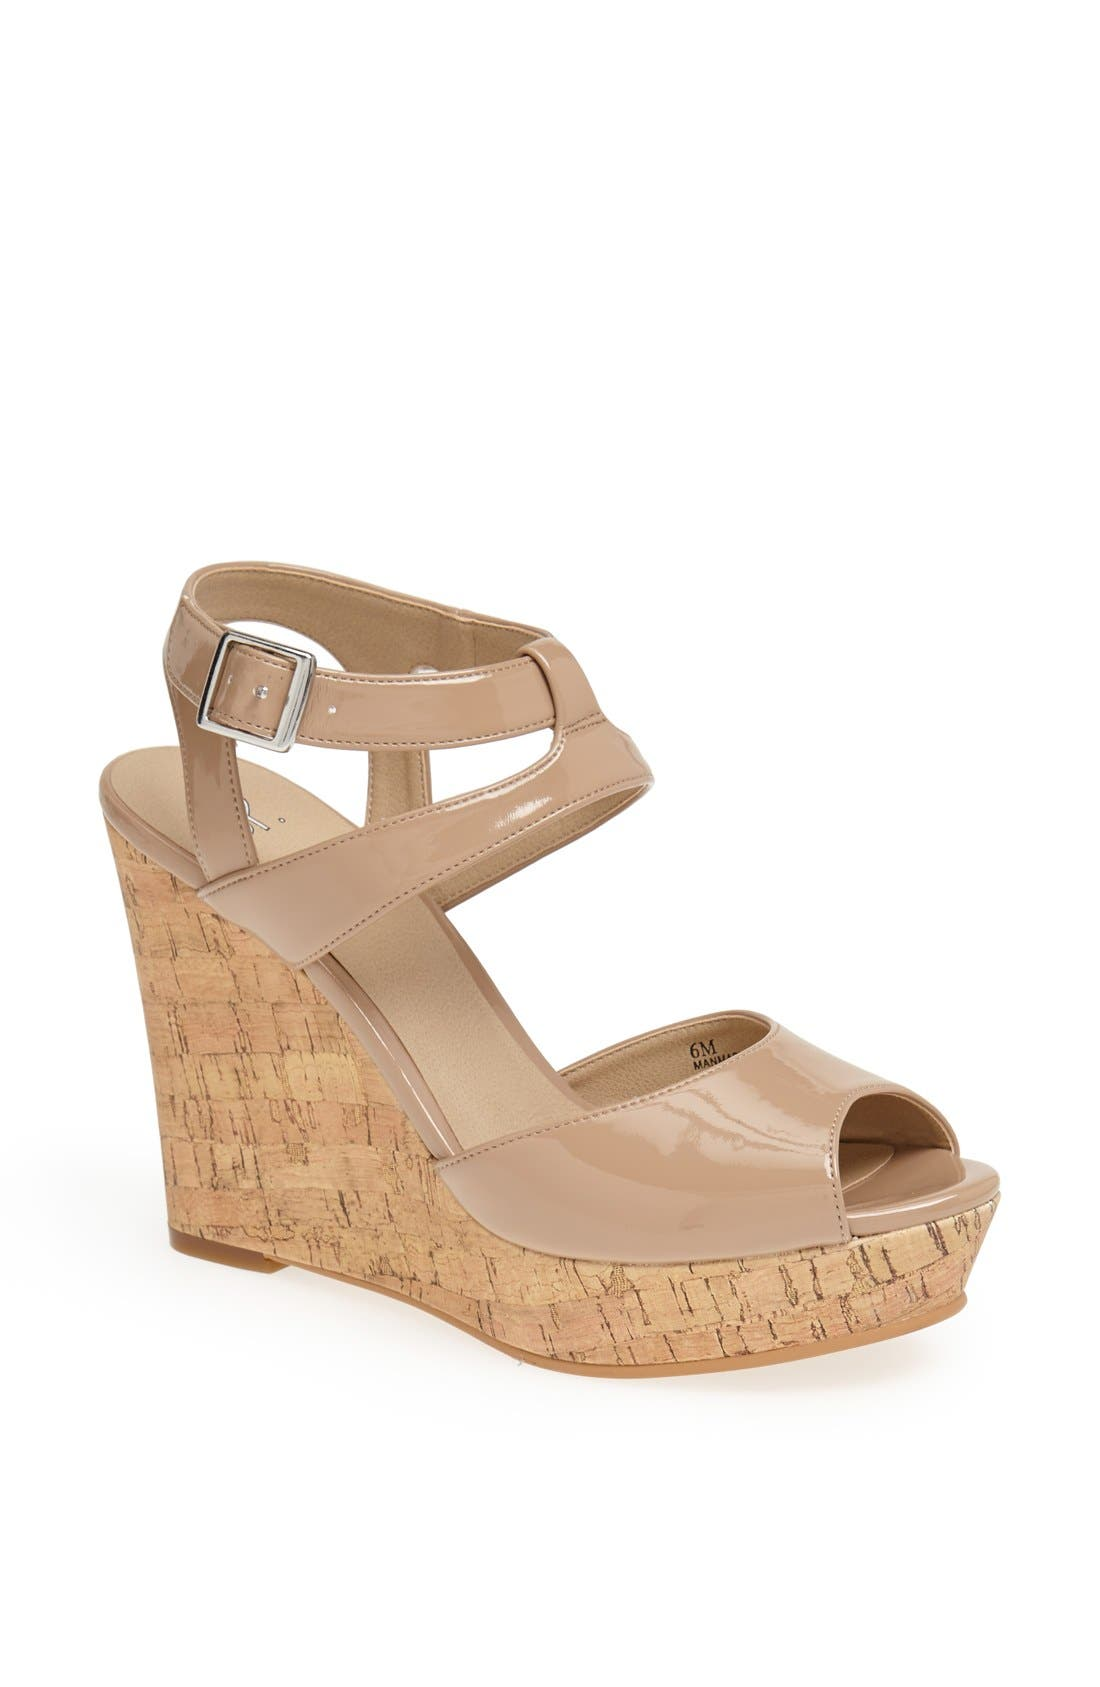 Alternate Image 1 Selected - BP. 'Julia' Patent Wedge Sandal